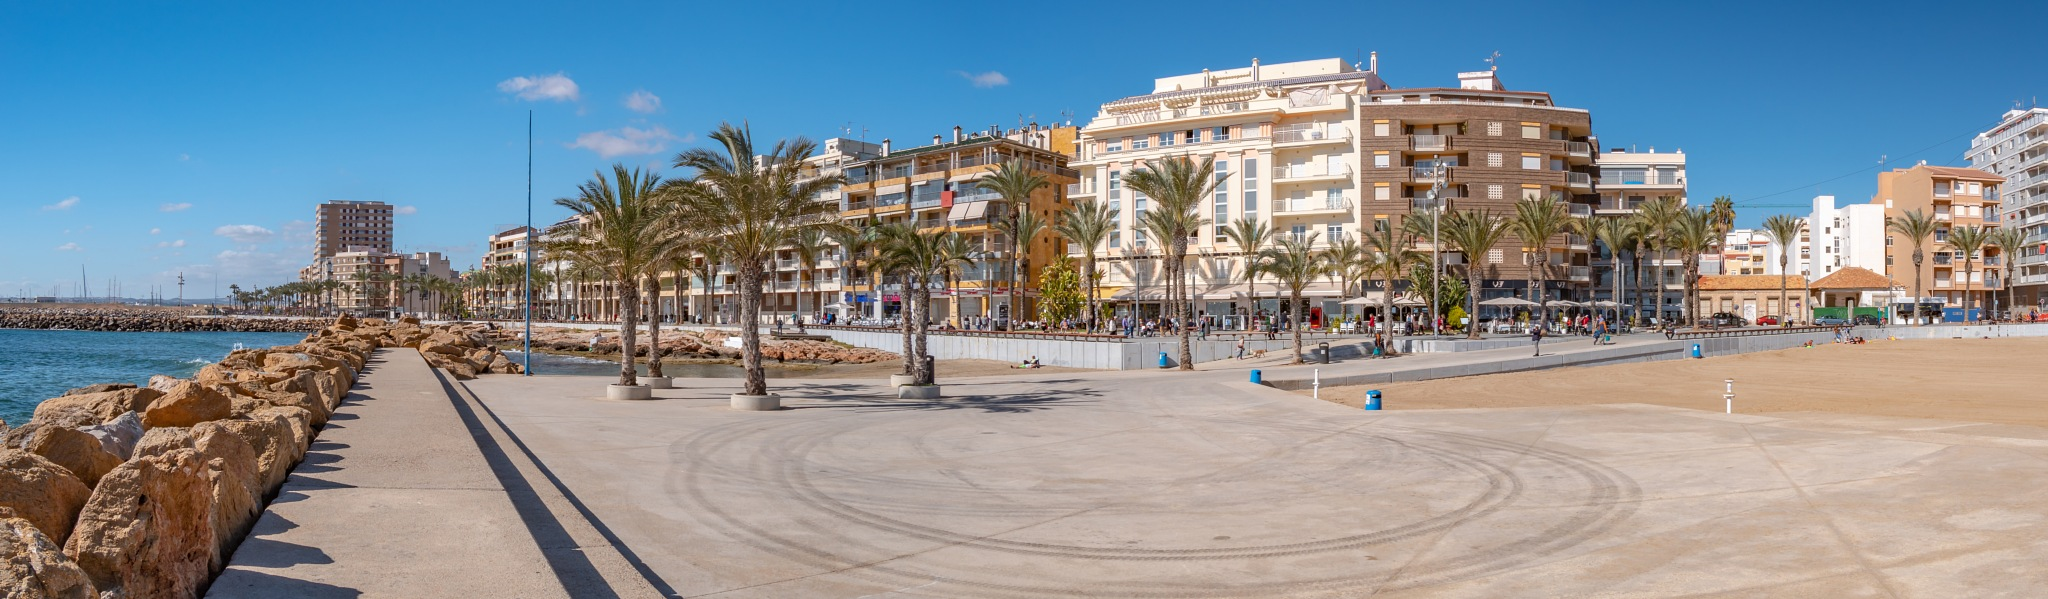 Photo in Sea and Sand #torrevieja #costa blanca south #sea #rocks #seafront #walkways #promenade #palm trees #blue sky